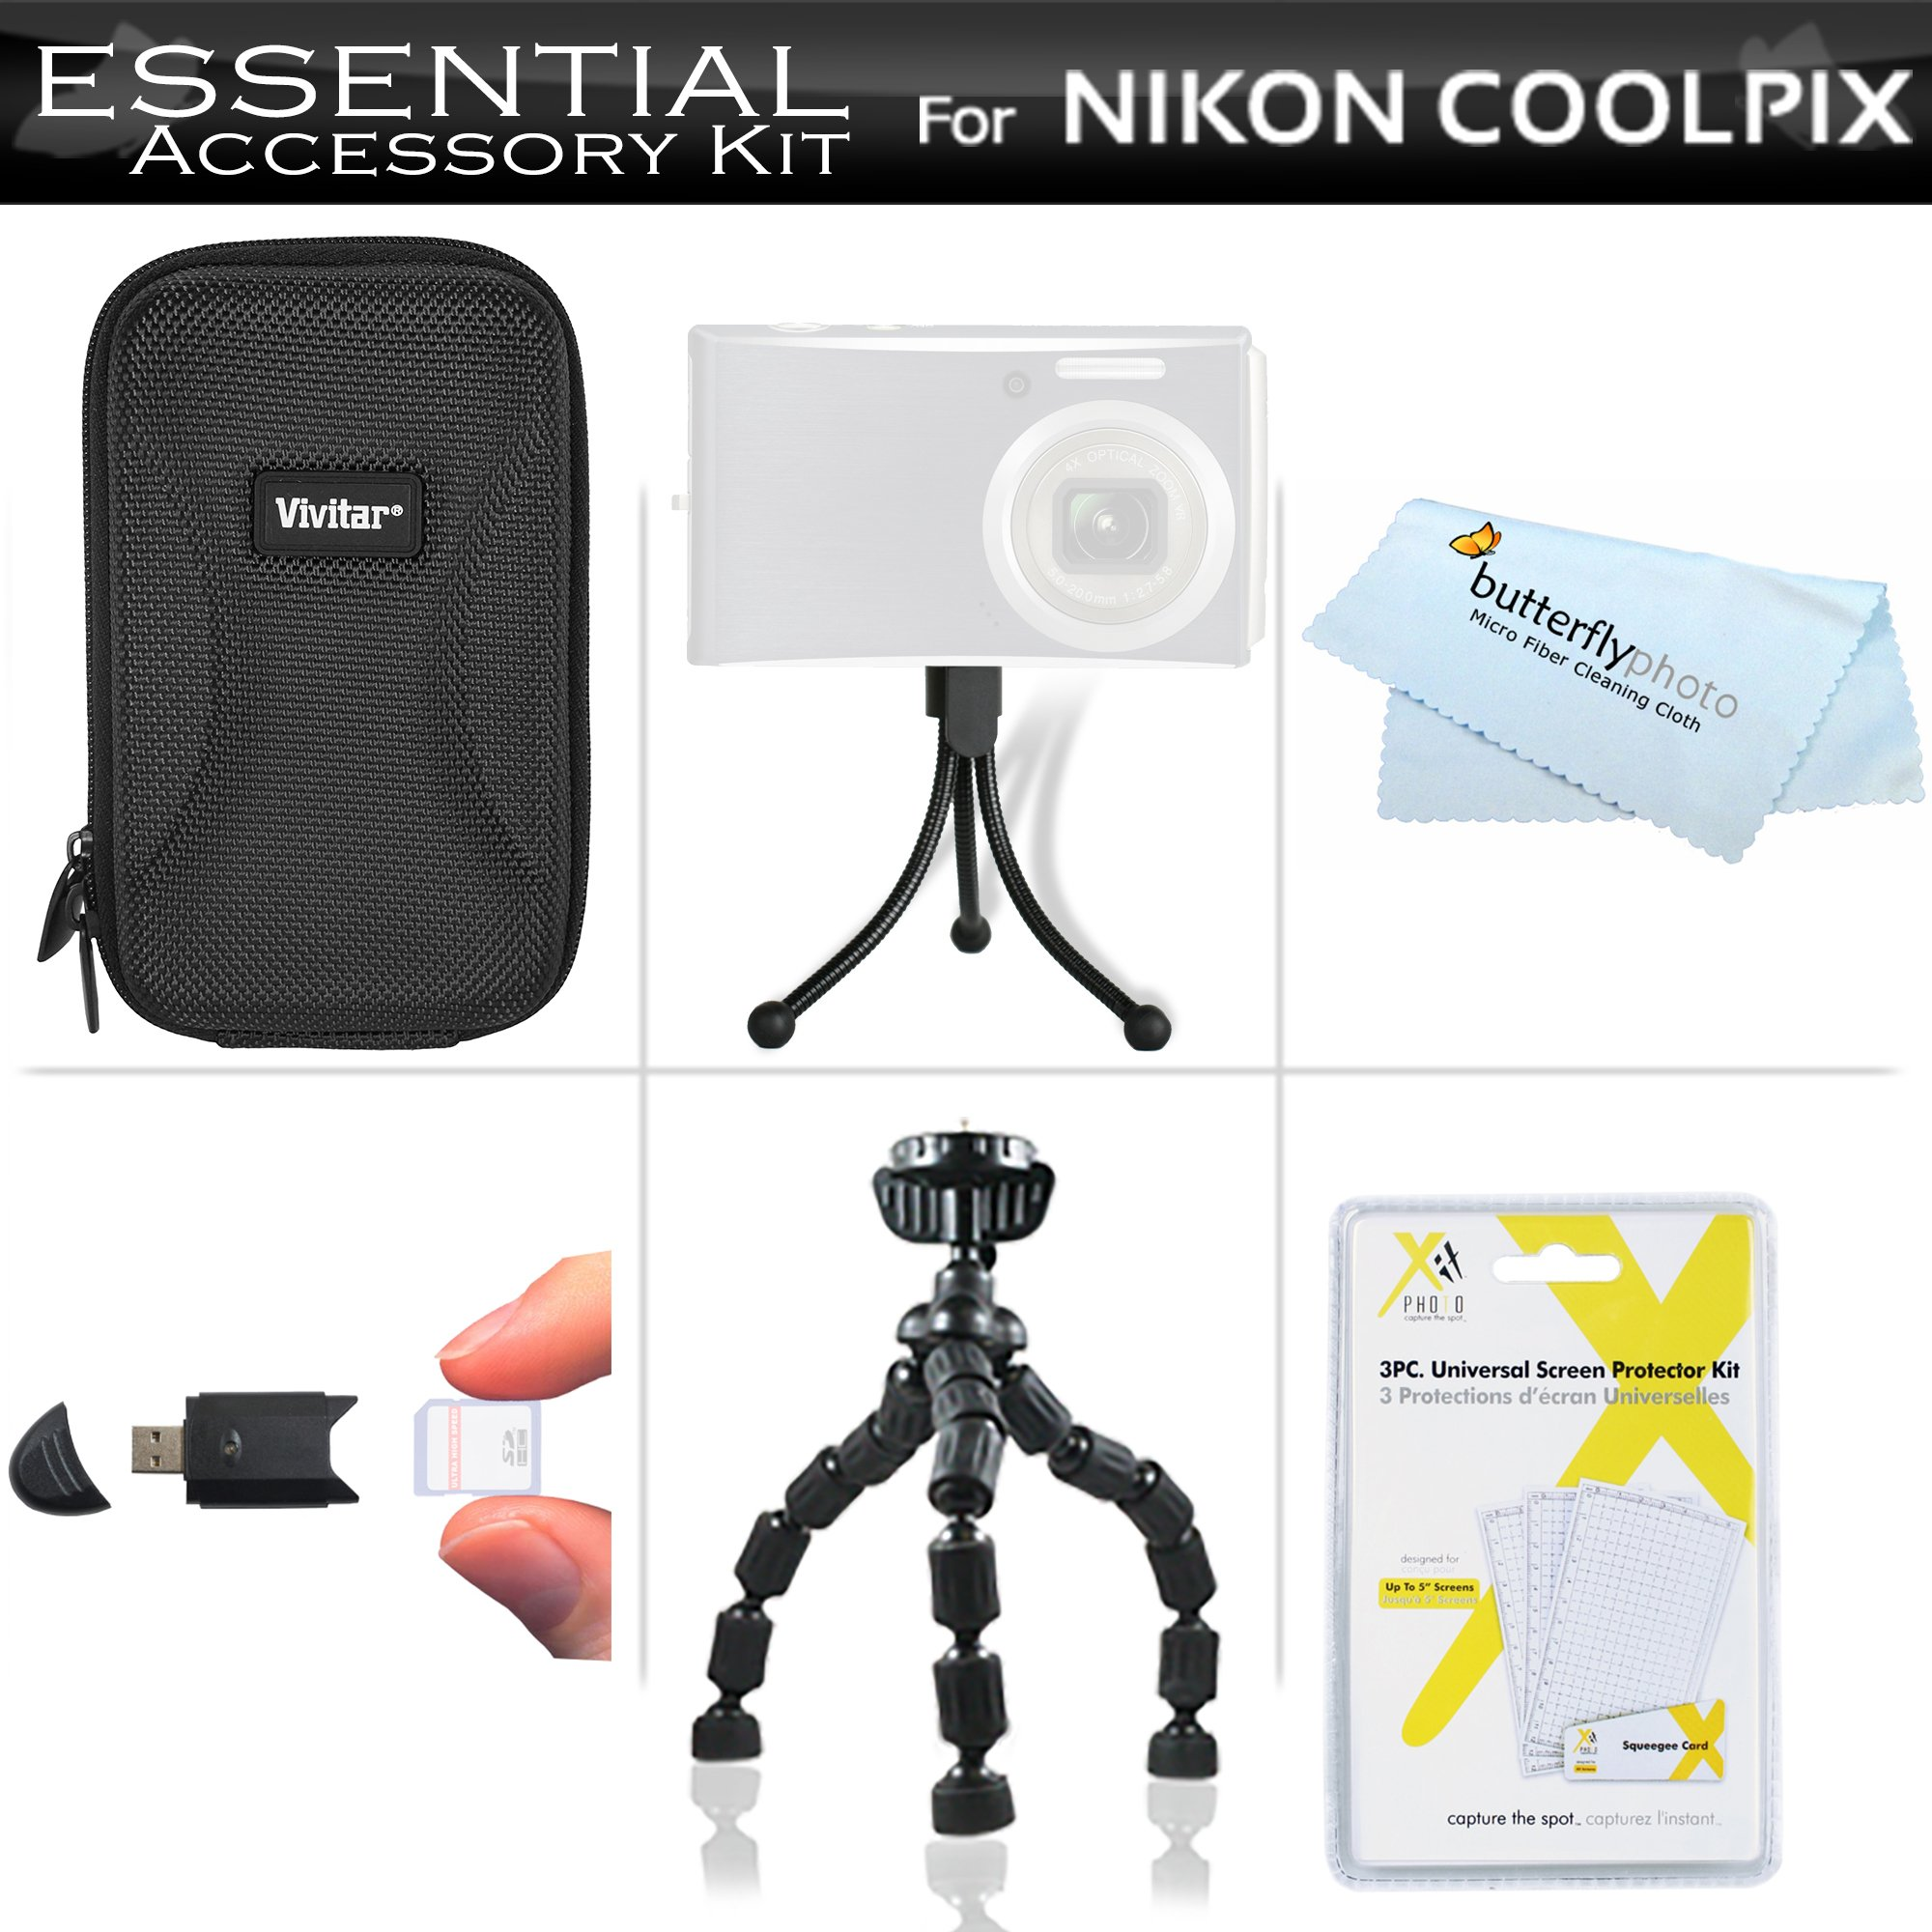 Essential Accessory Kit For Nikon COOLPIX S3700, S2900, S33, S7000, S6900, S3500, S6400, S3100, S4100, S100, S4300, S3300 Digital Camera Includes Hard Case + USB 2.0 High Speed Card Reader + LCD Screen Protectors + Gripster Flexible Tripod + More